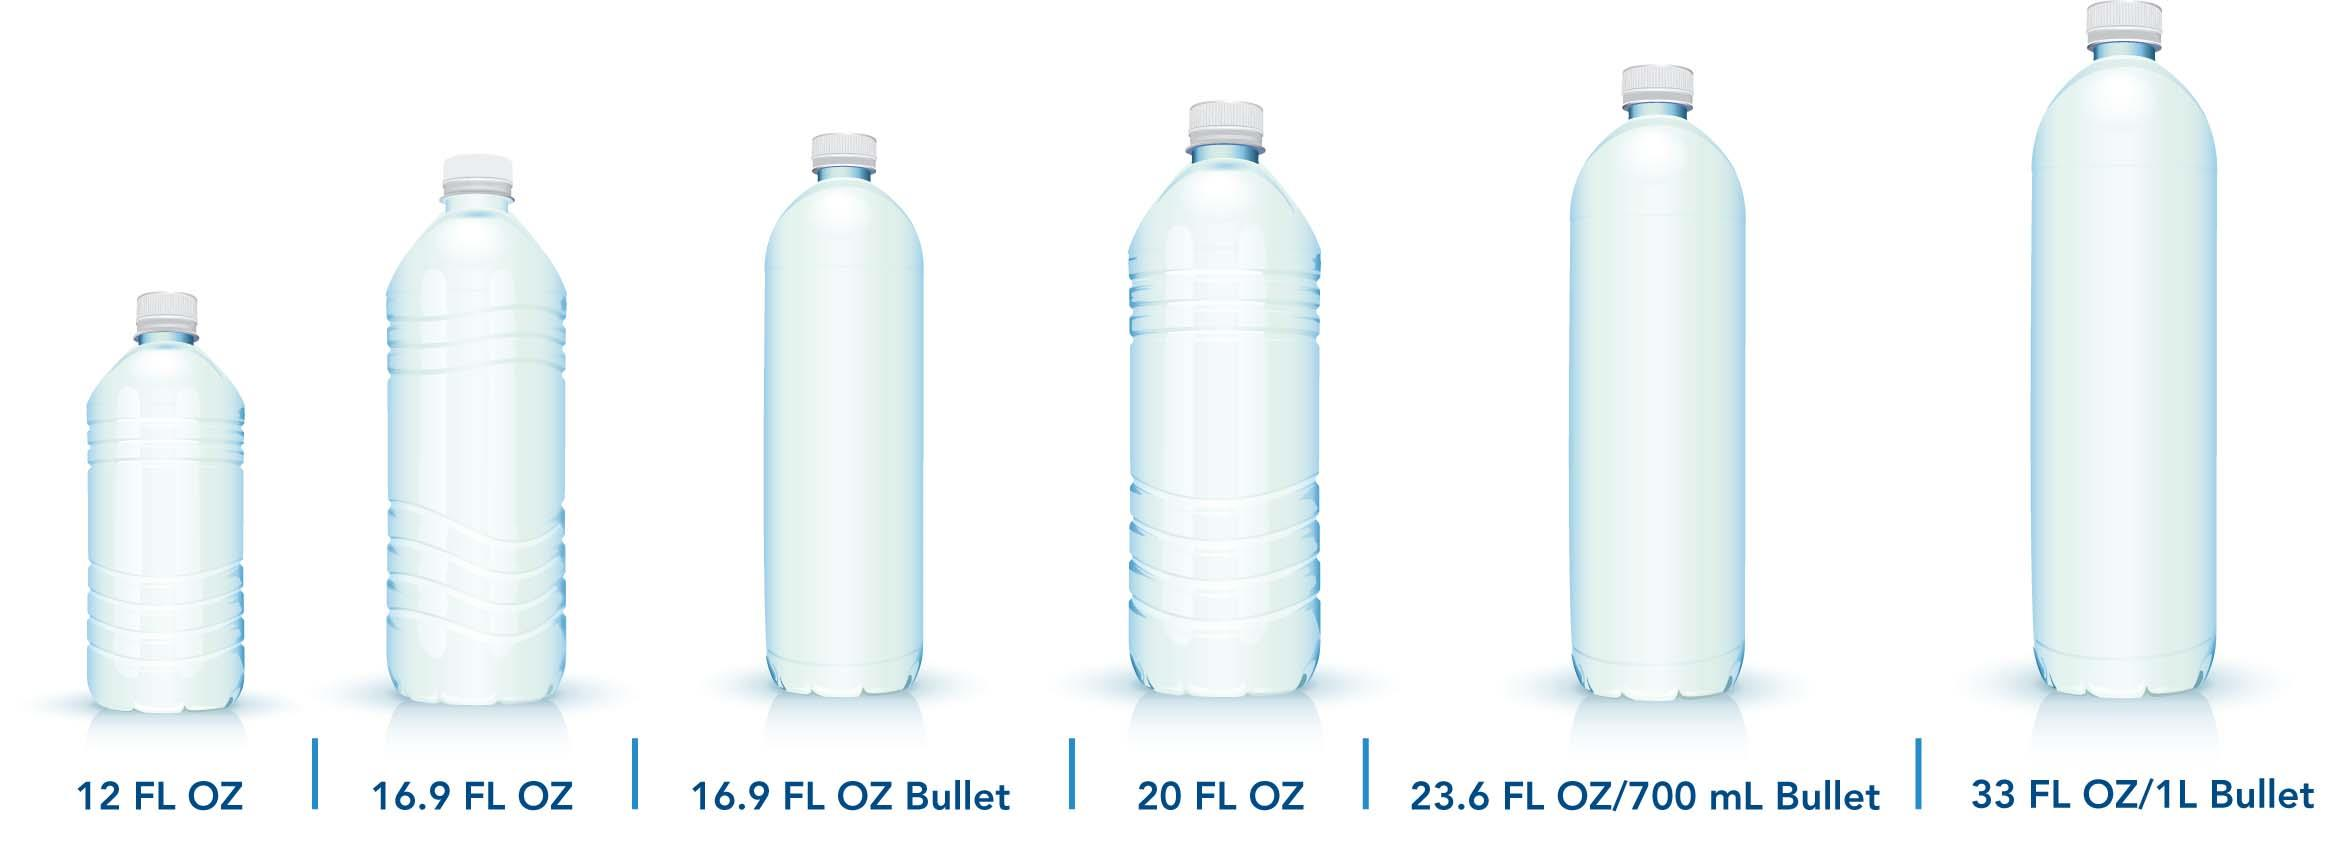 Some of our popular bottle sizes